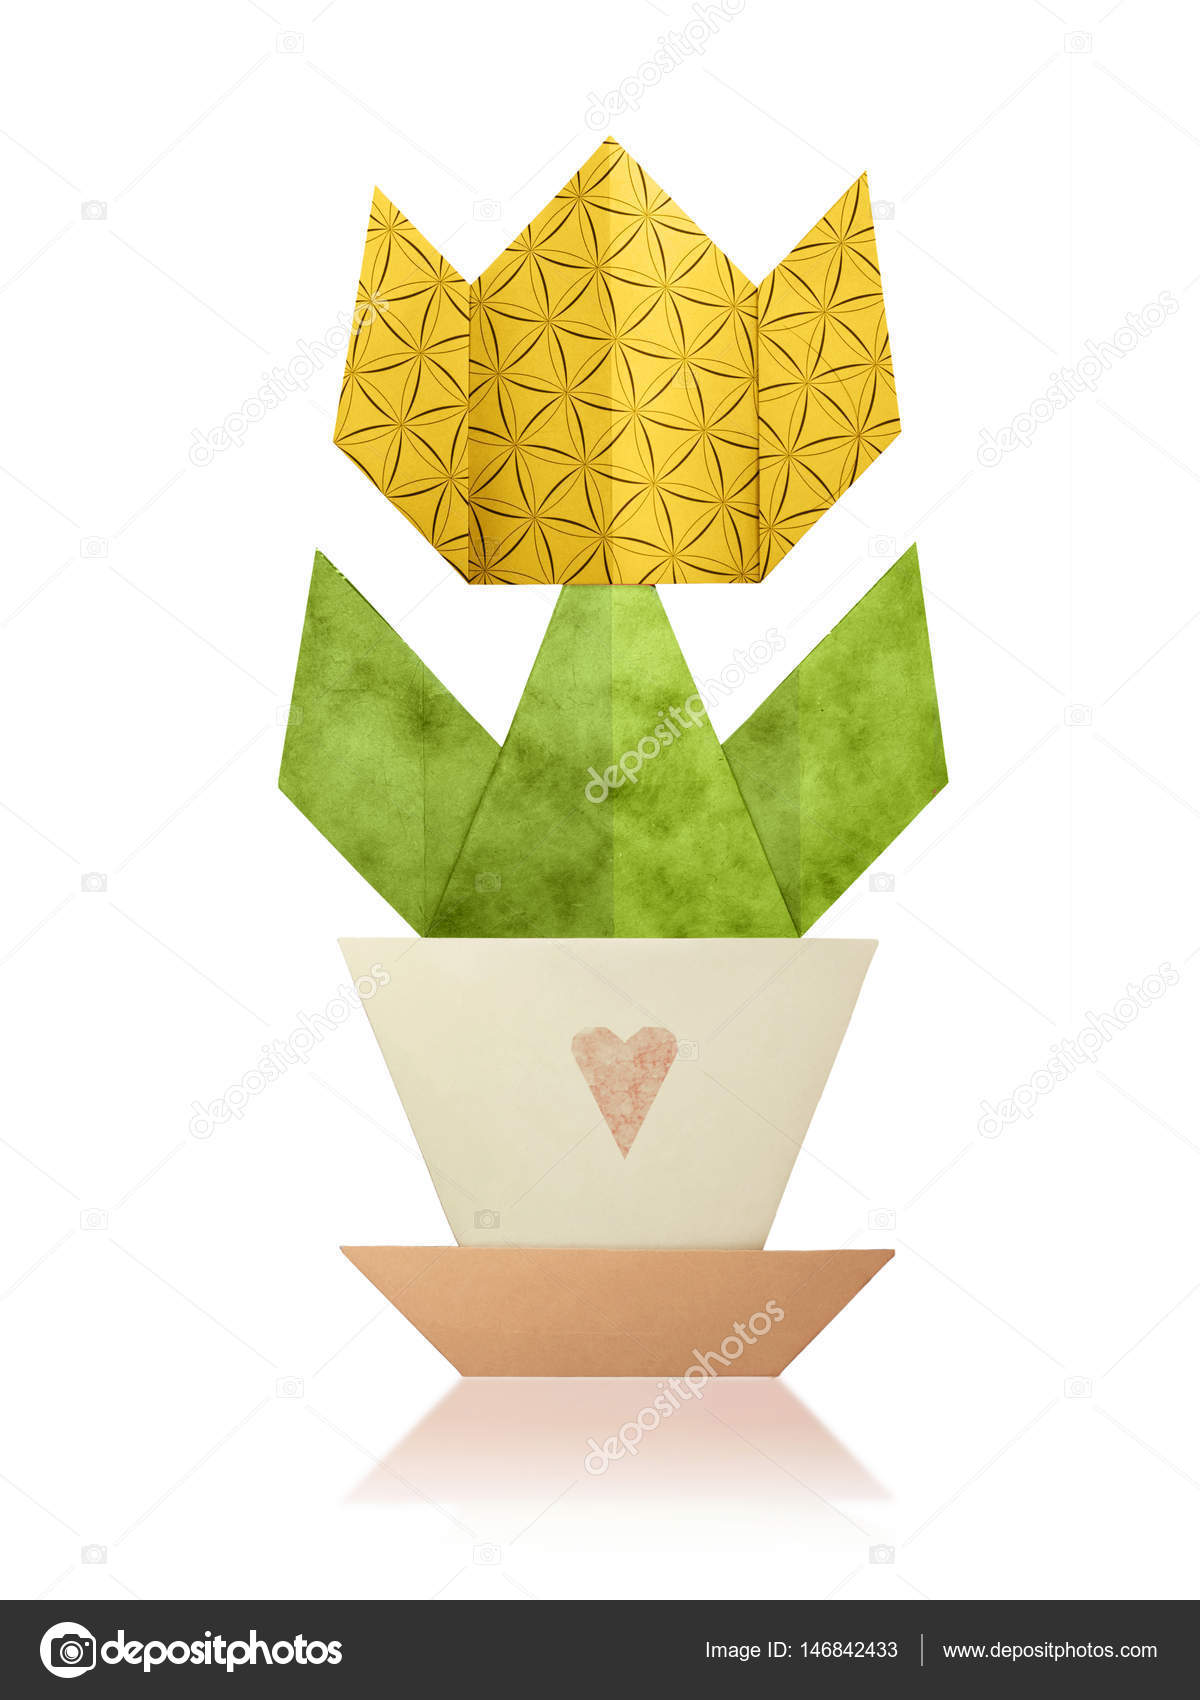 Origami tulip in a pot stock photo mandrixta 146842433 origami paper tulip home flower in a pot on a white background photo by mandrixta jeuxipadfo Image collections